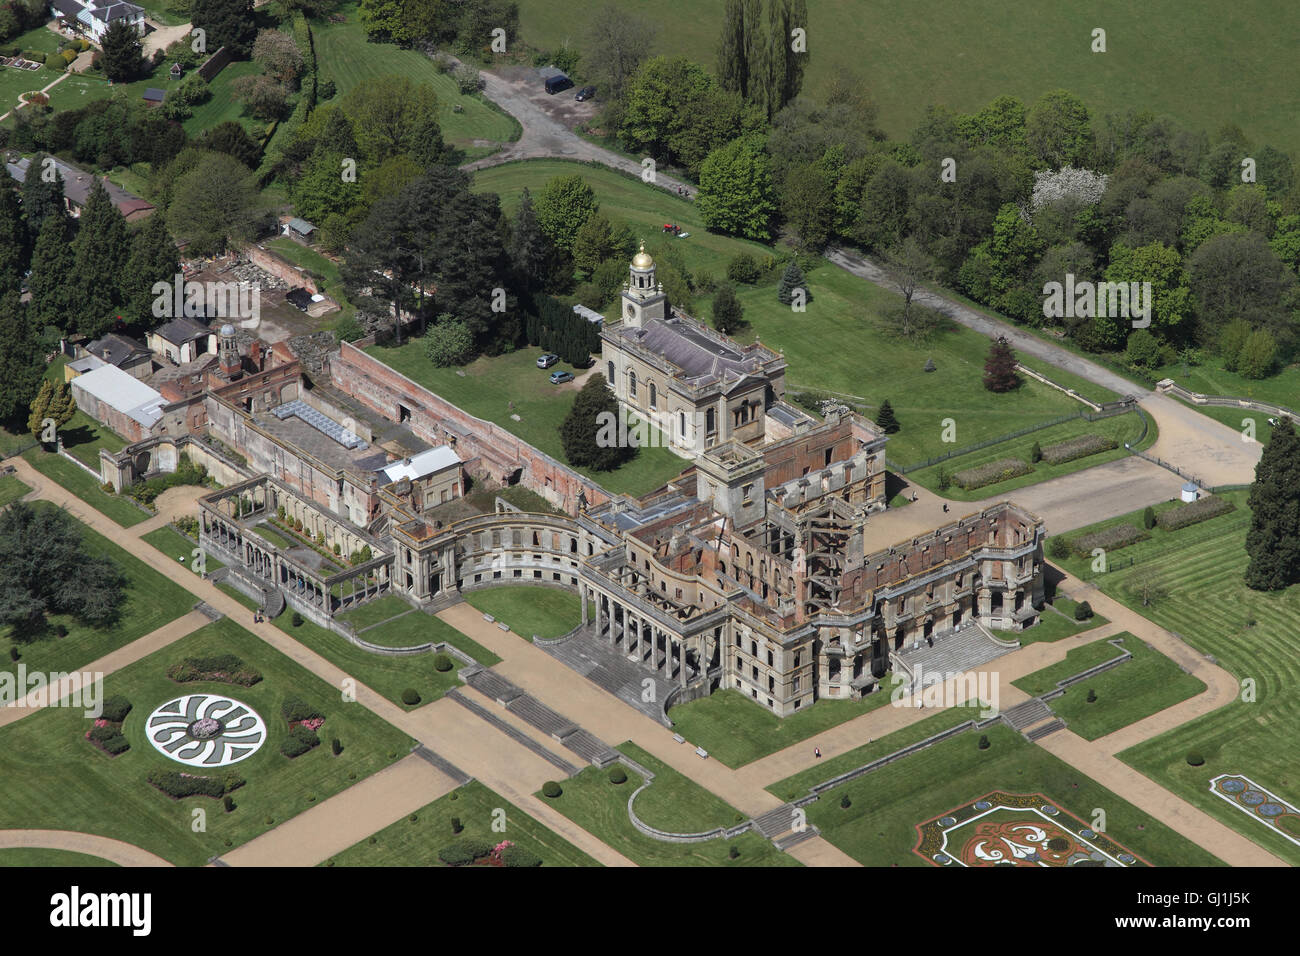 Aerial views of English Heritage Witley Court and gardens near Great Witley set amongst the yellow rapeseed fields - Stock Image